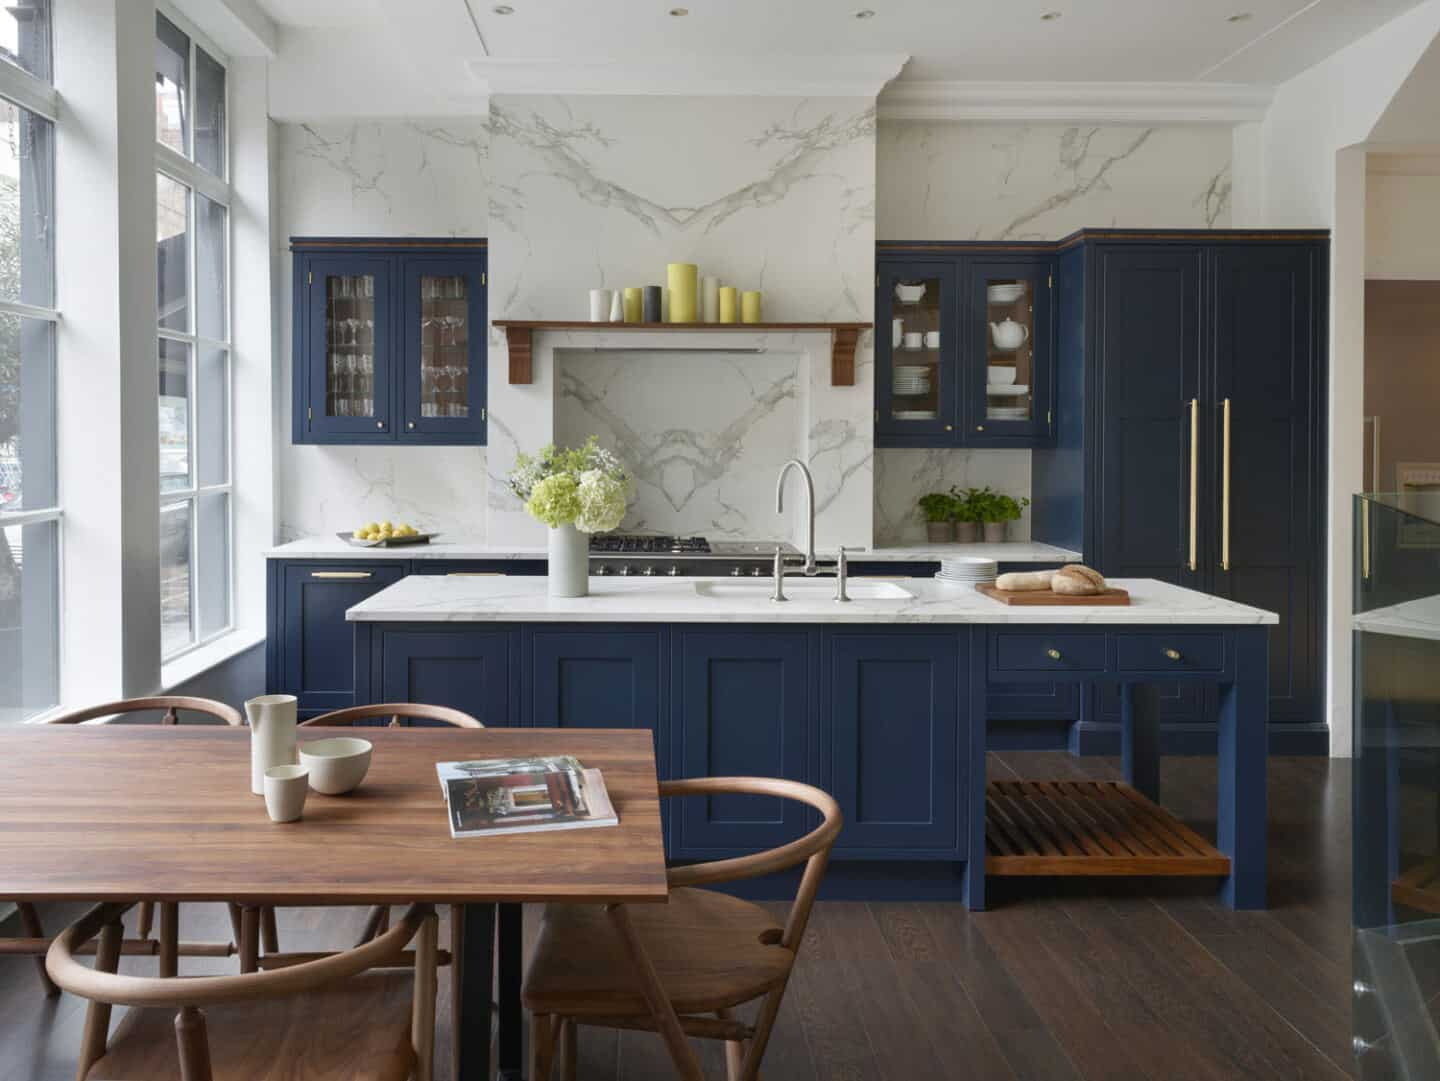 Get your dream kitchen on a budget. Ex Display Navy Blue Stoneham Knole Shaker kitchen from Used Kitchen Exchange.